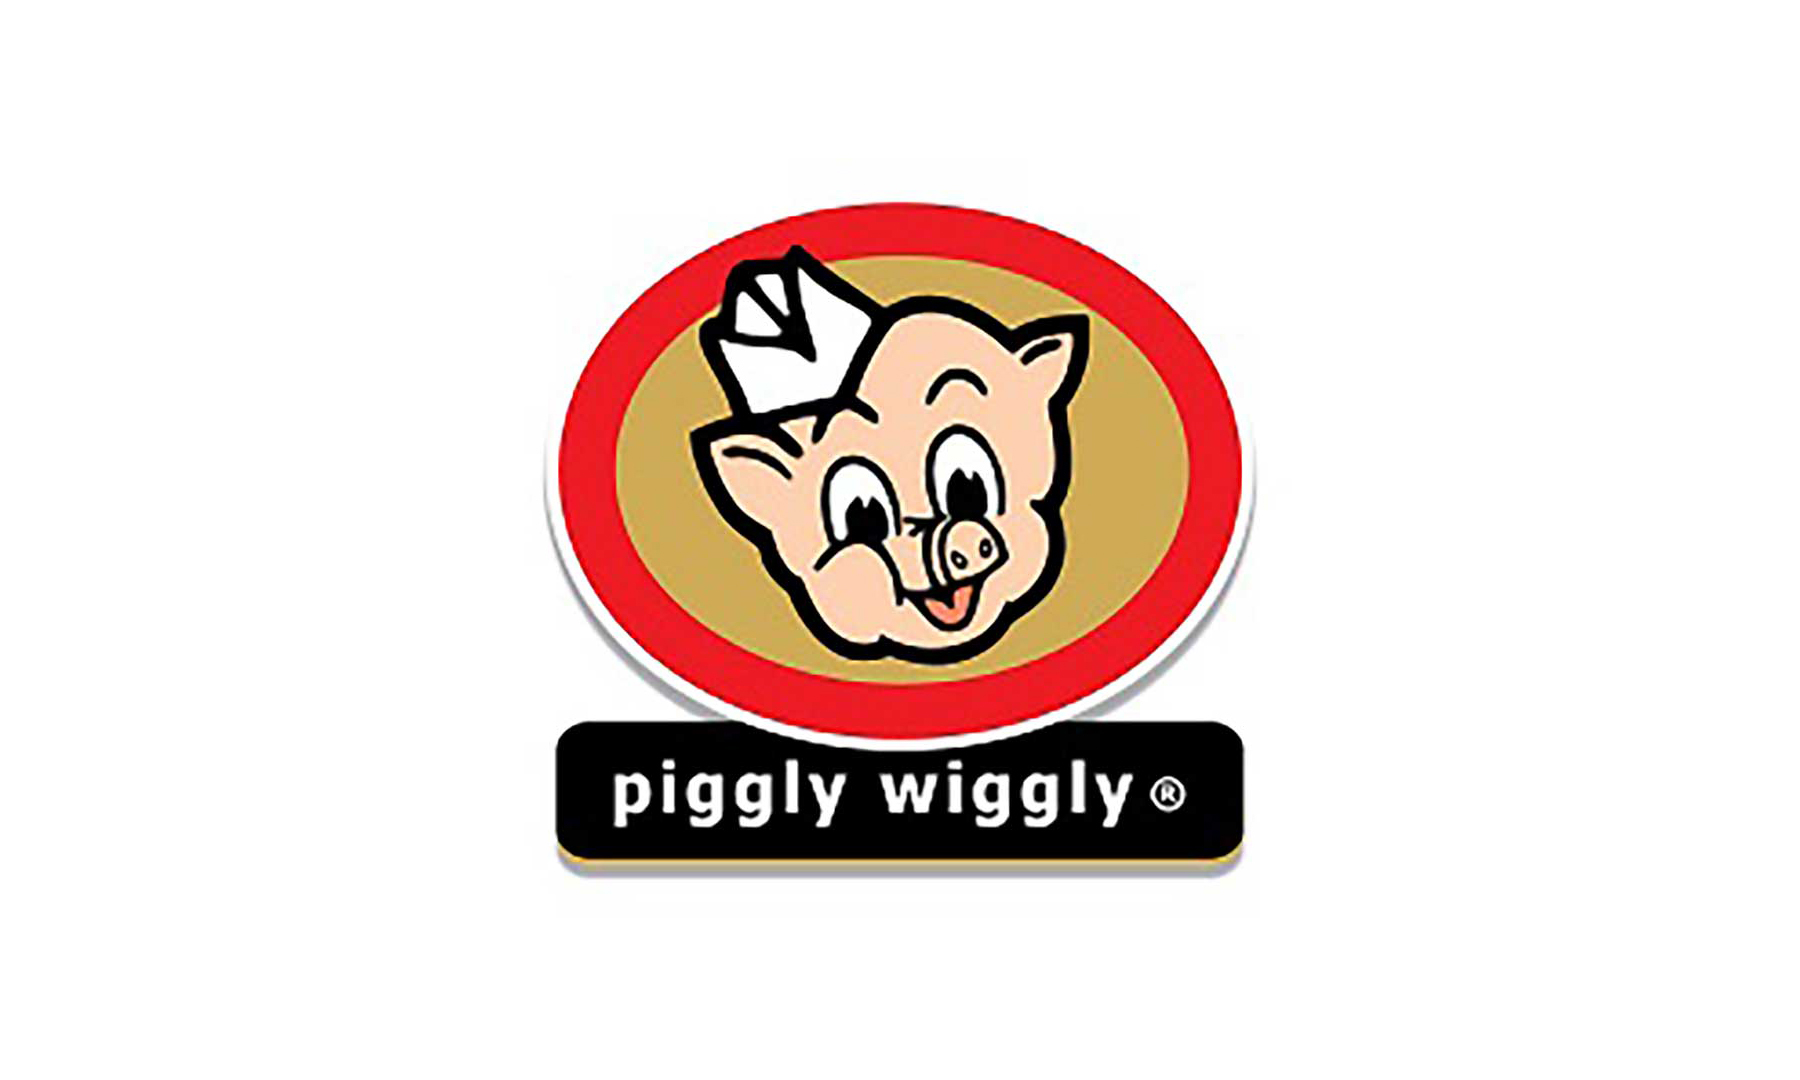 Piggly Wiggly logo independent store